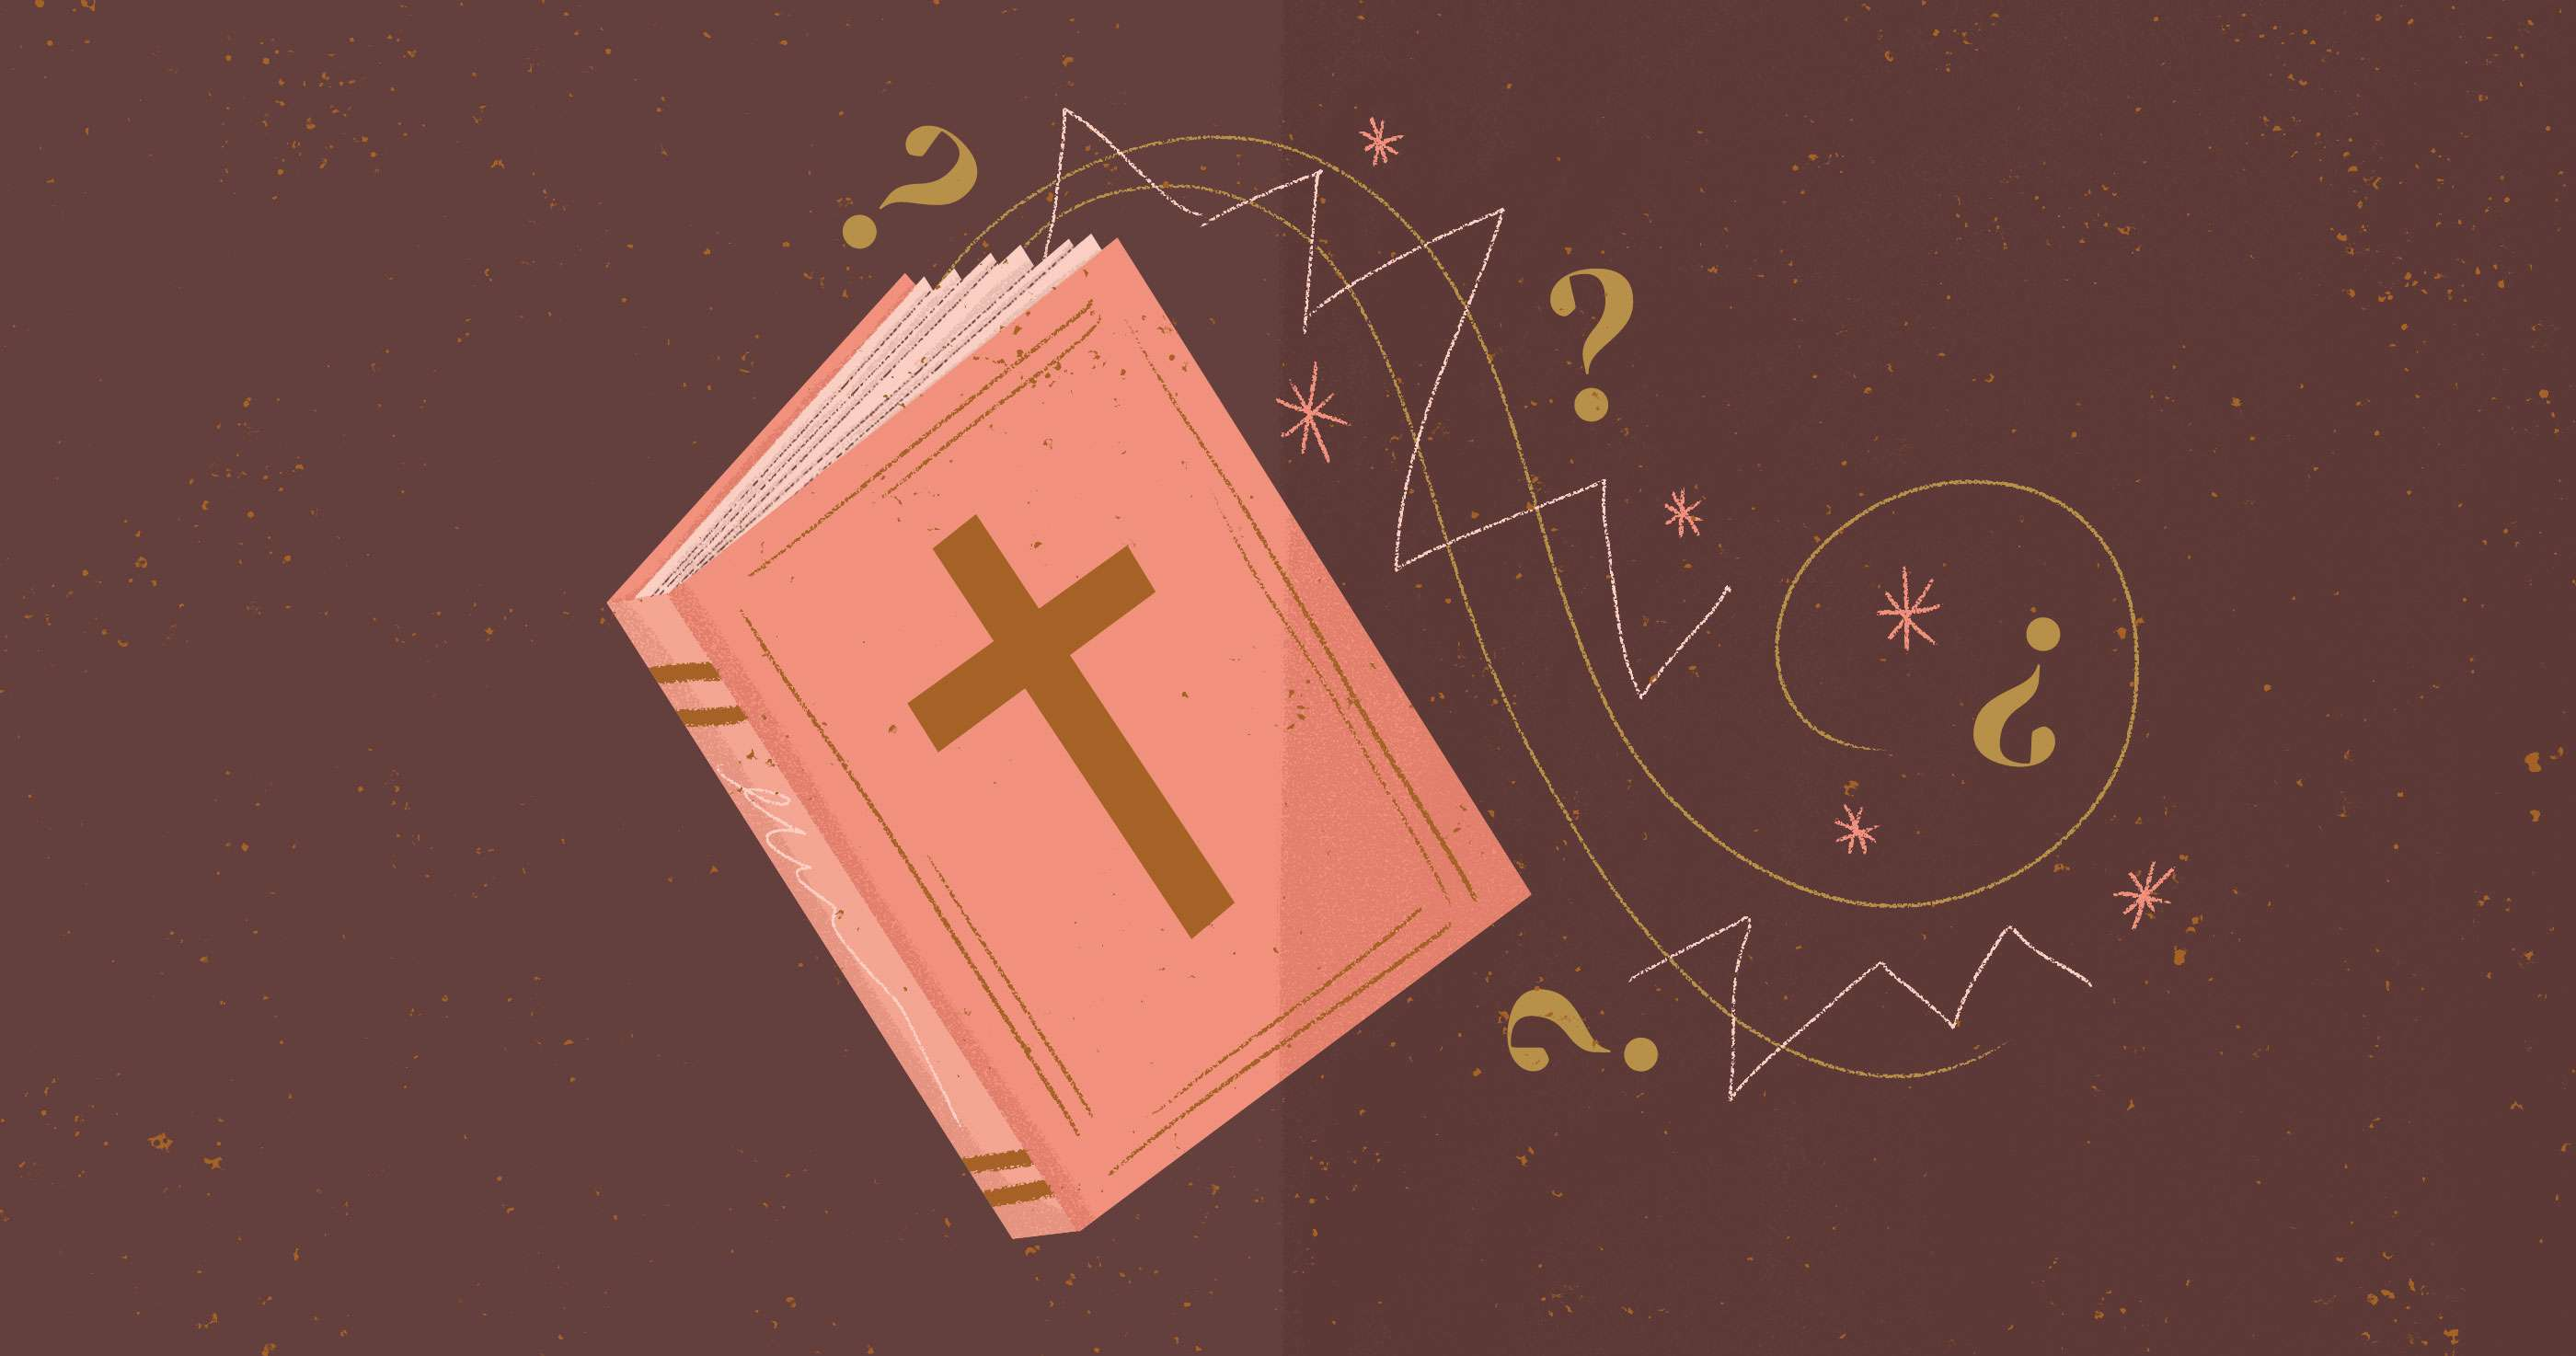 6 Questions about the Book of Job